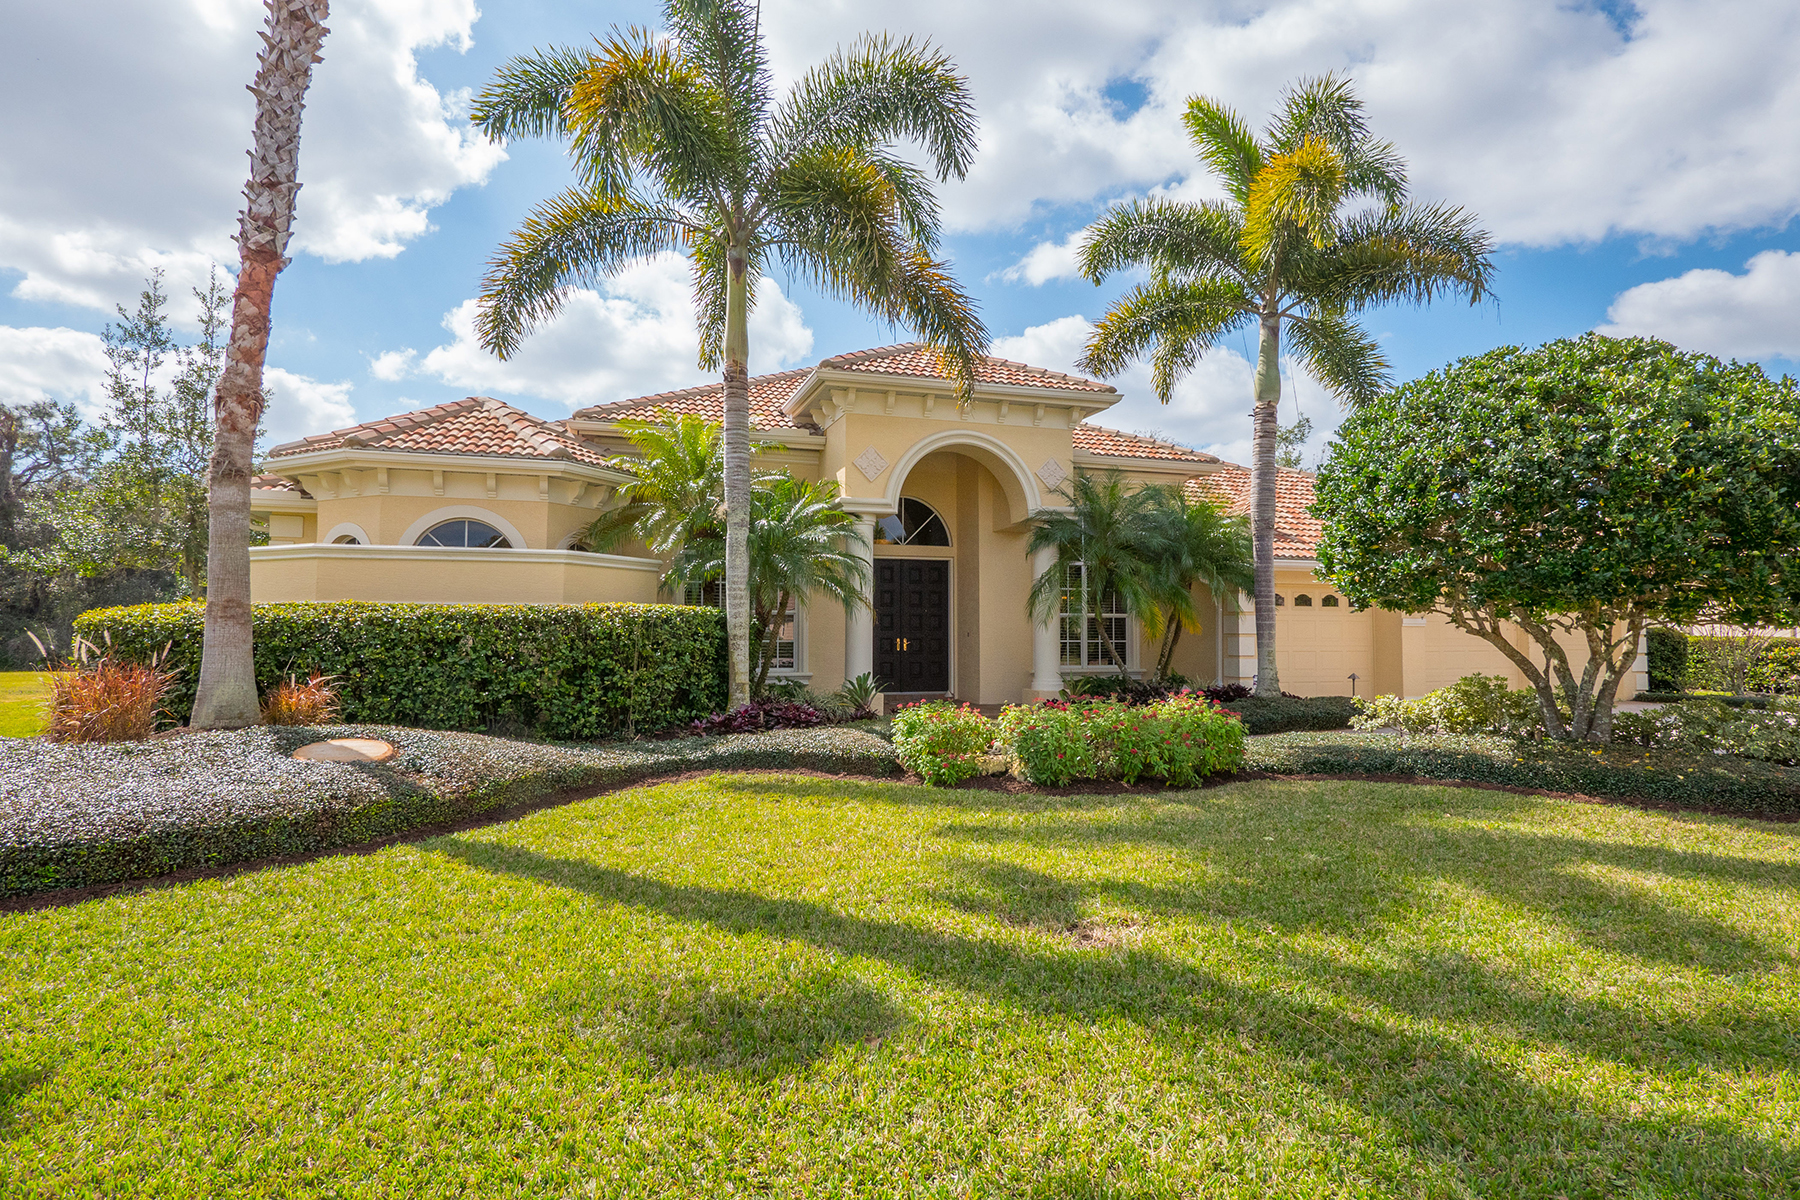 Single Family Home for Sale at LAKEWOOD RANCH 7024 Beechmont Terr Lakewood Ranch, Florida, 34202 United States